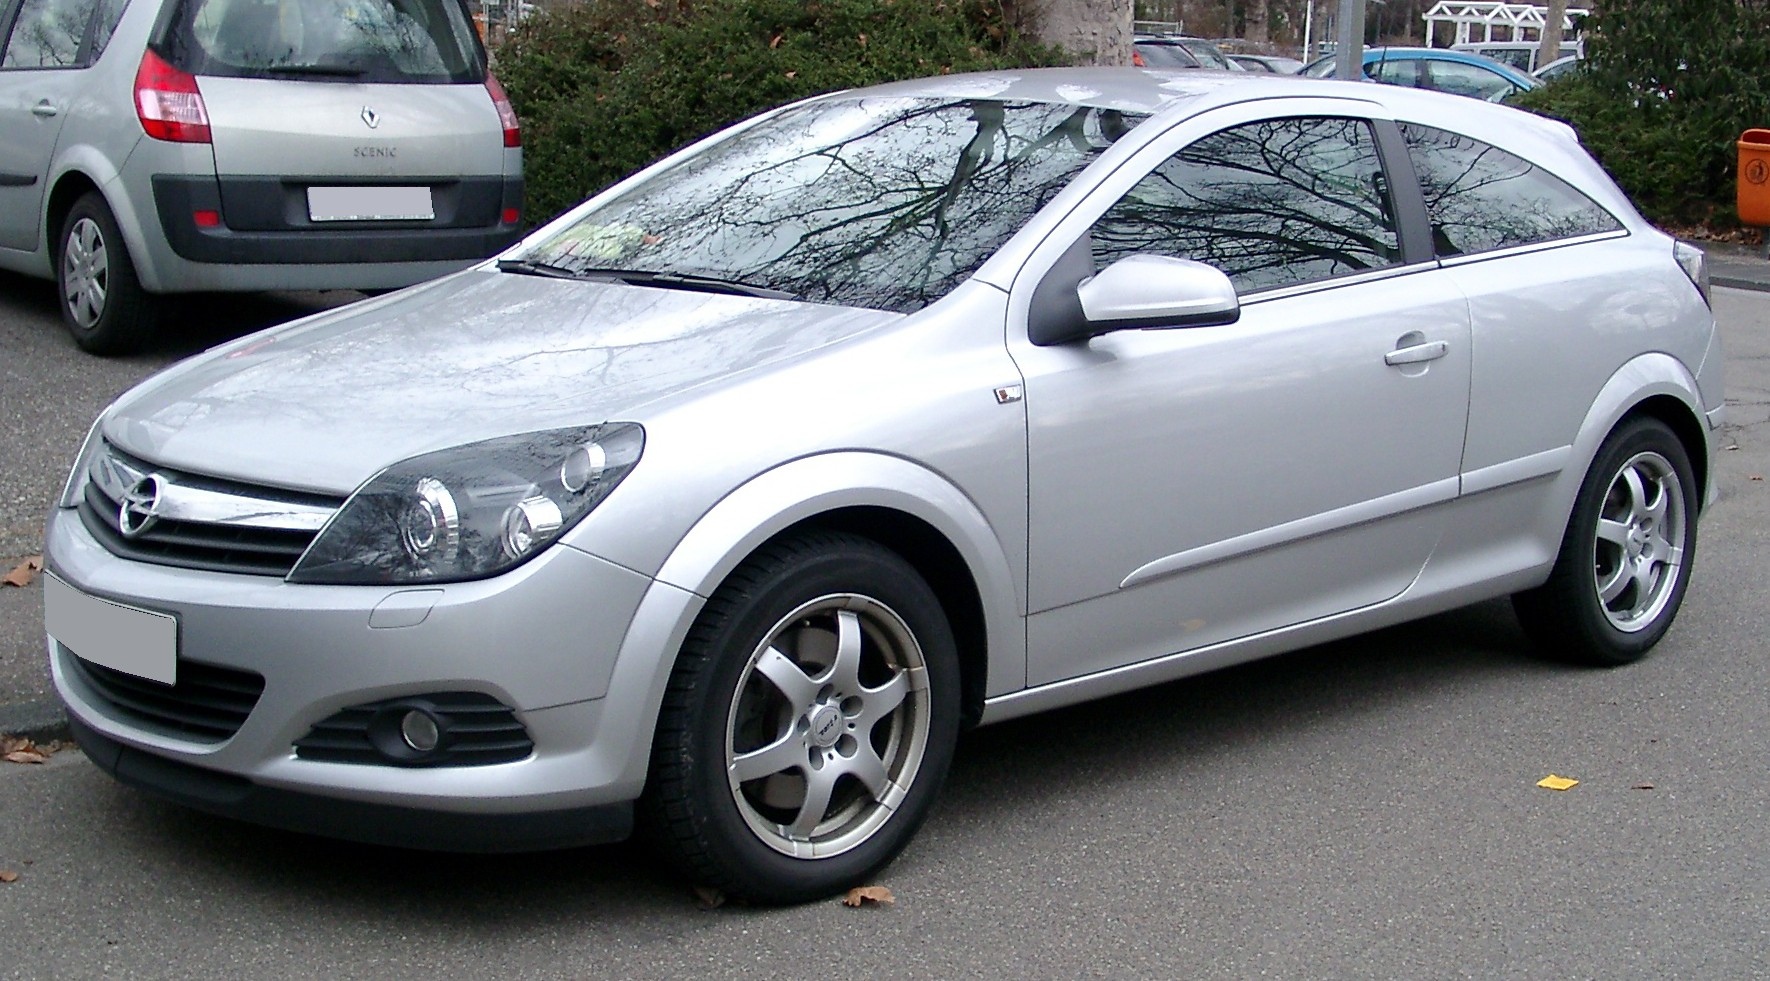 File:Opel Astra H GTC front 20080226.jpg